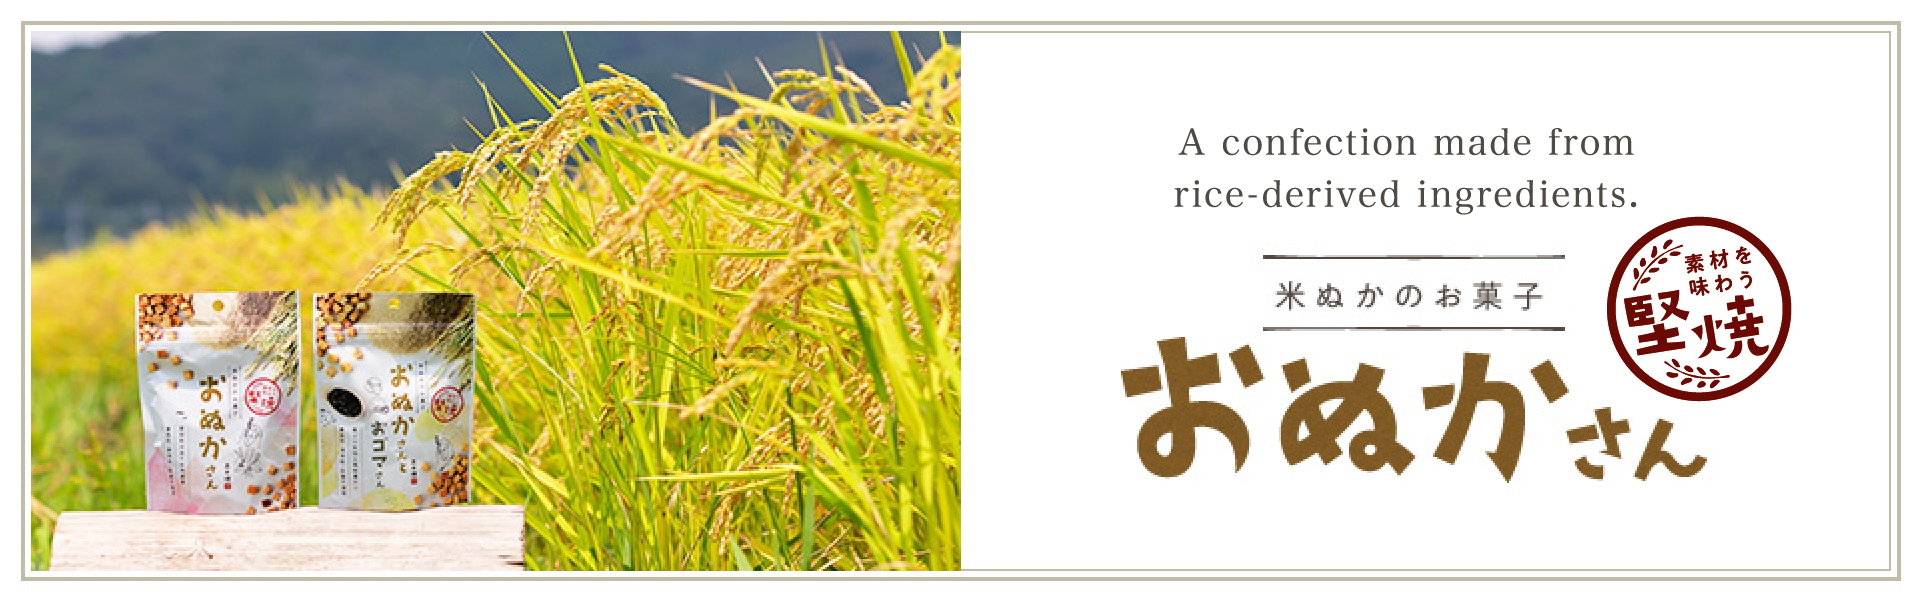 A confection made from rice-derived ingredients. Onuka-san